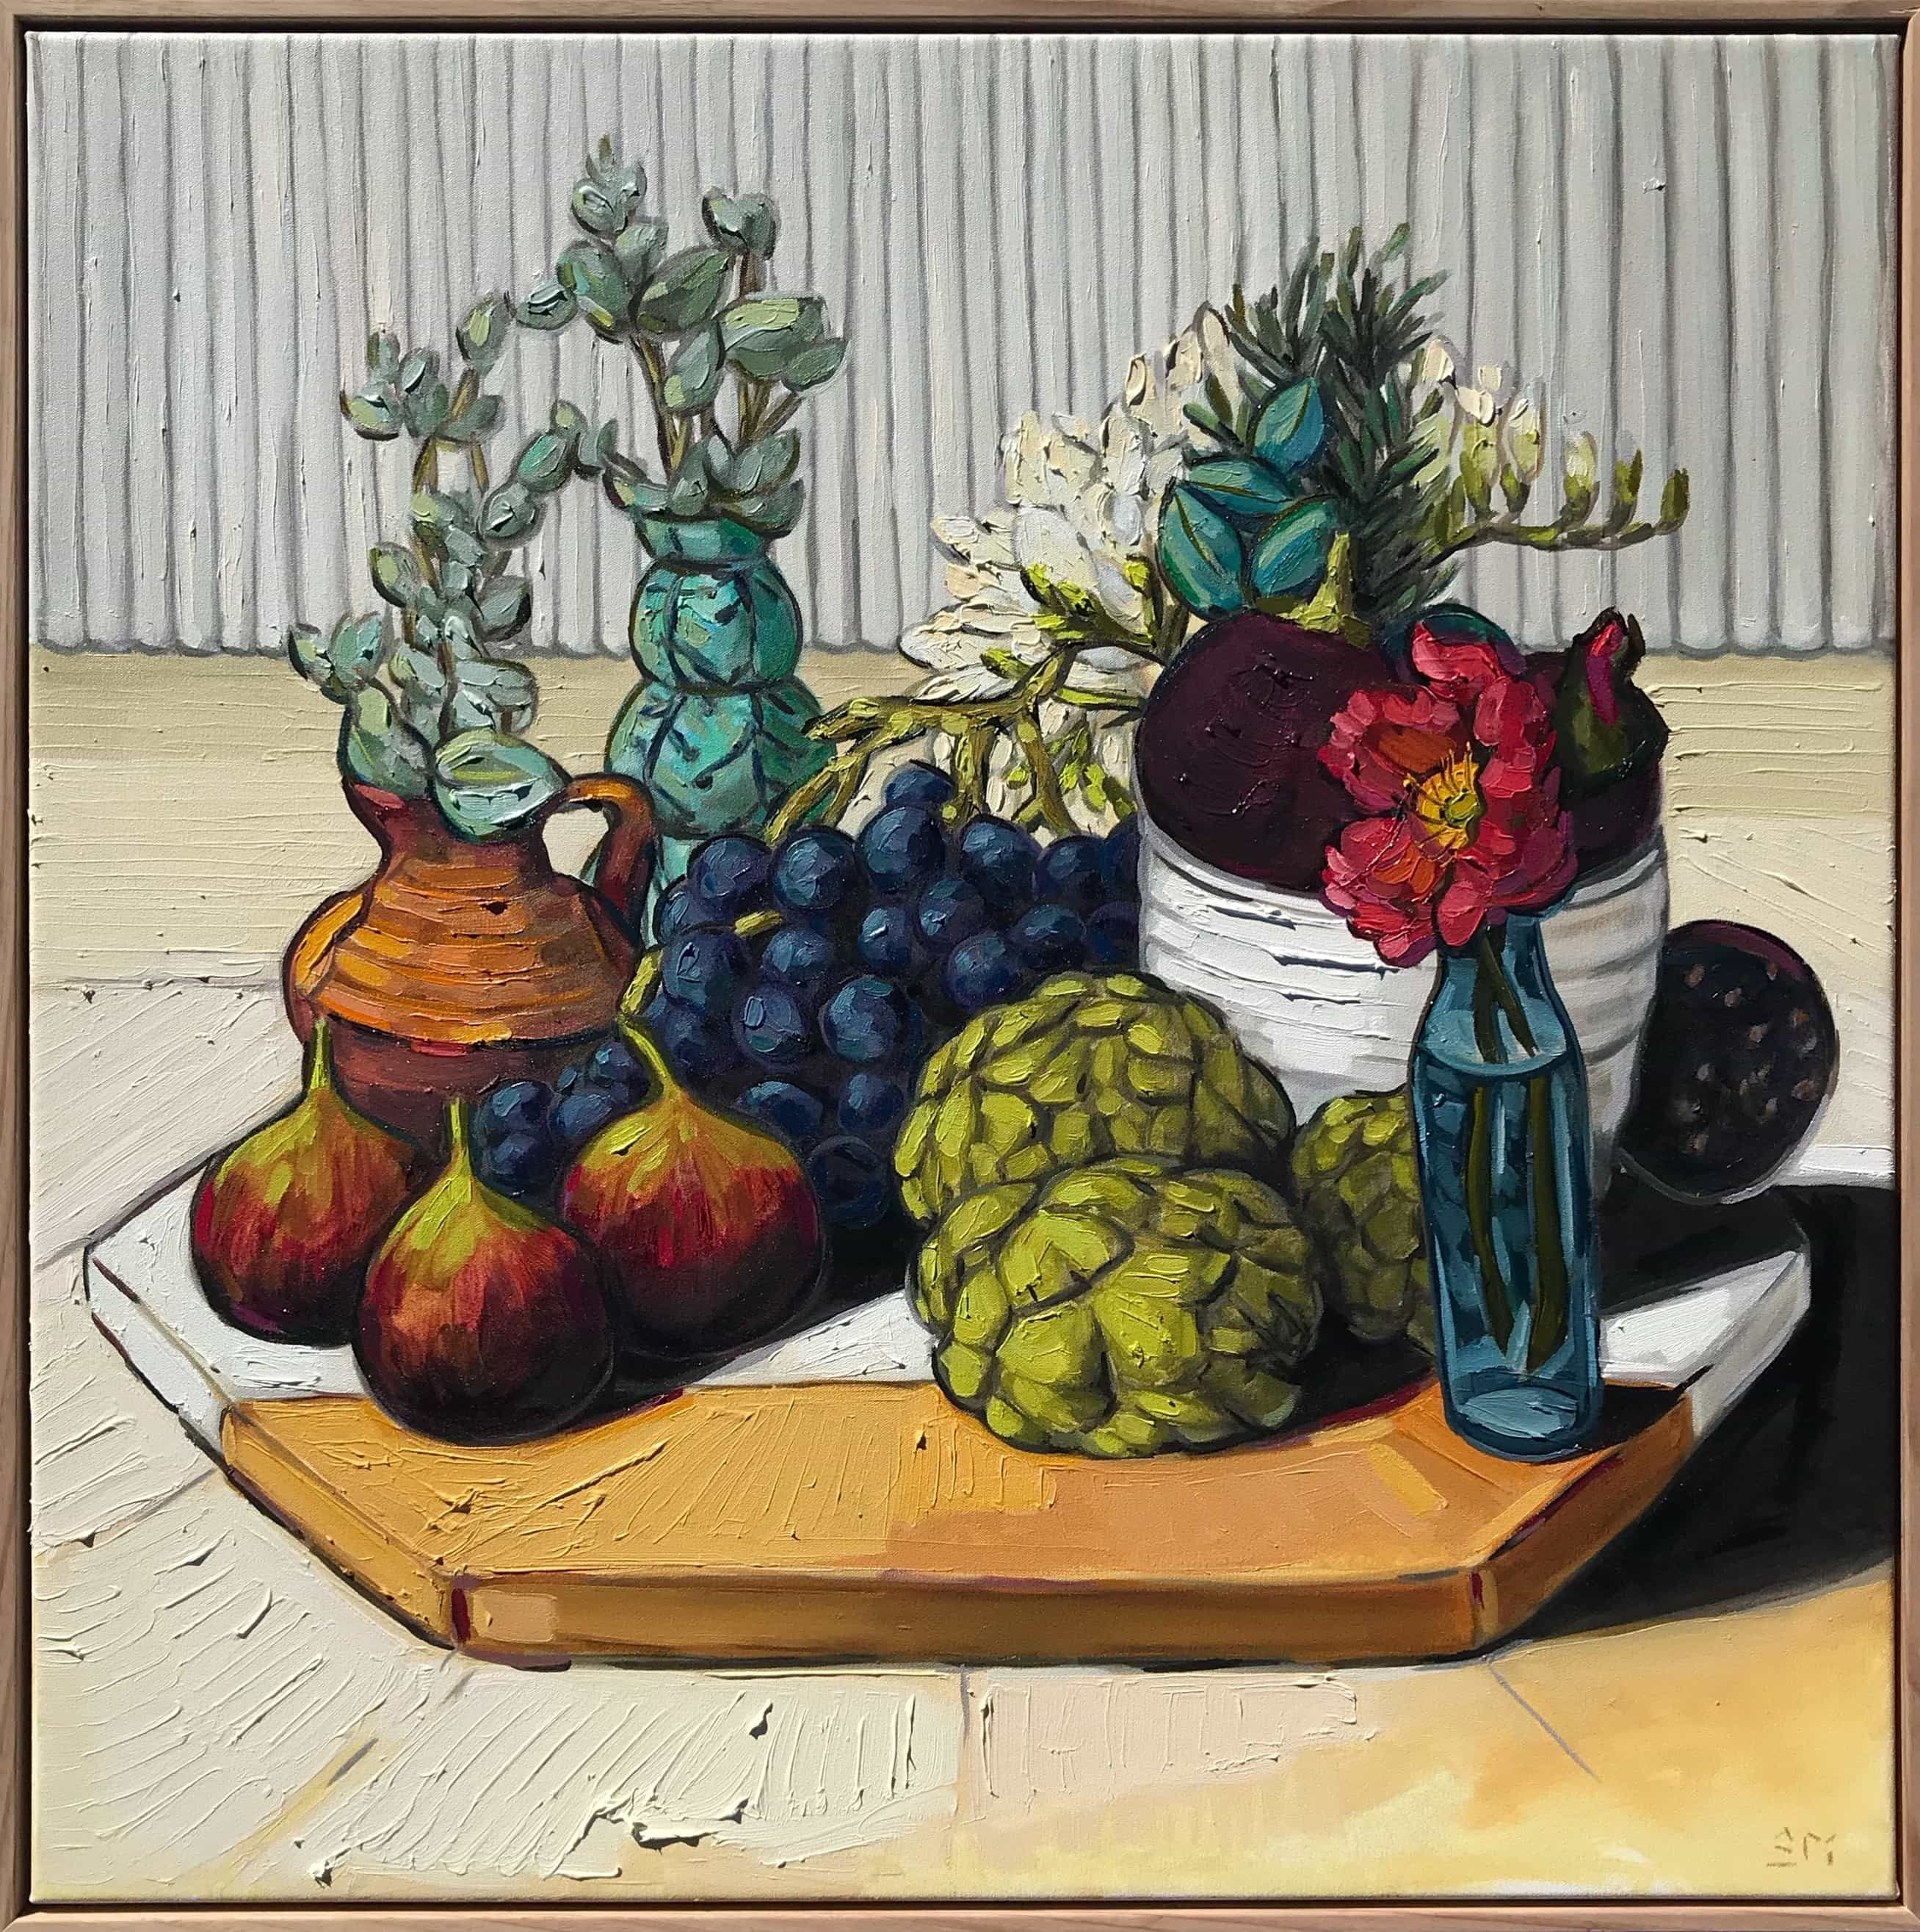 Sam Michelle, Arranged Grapes, Figs and Artichoke, 2018, 68x68cm